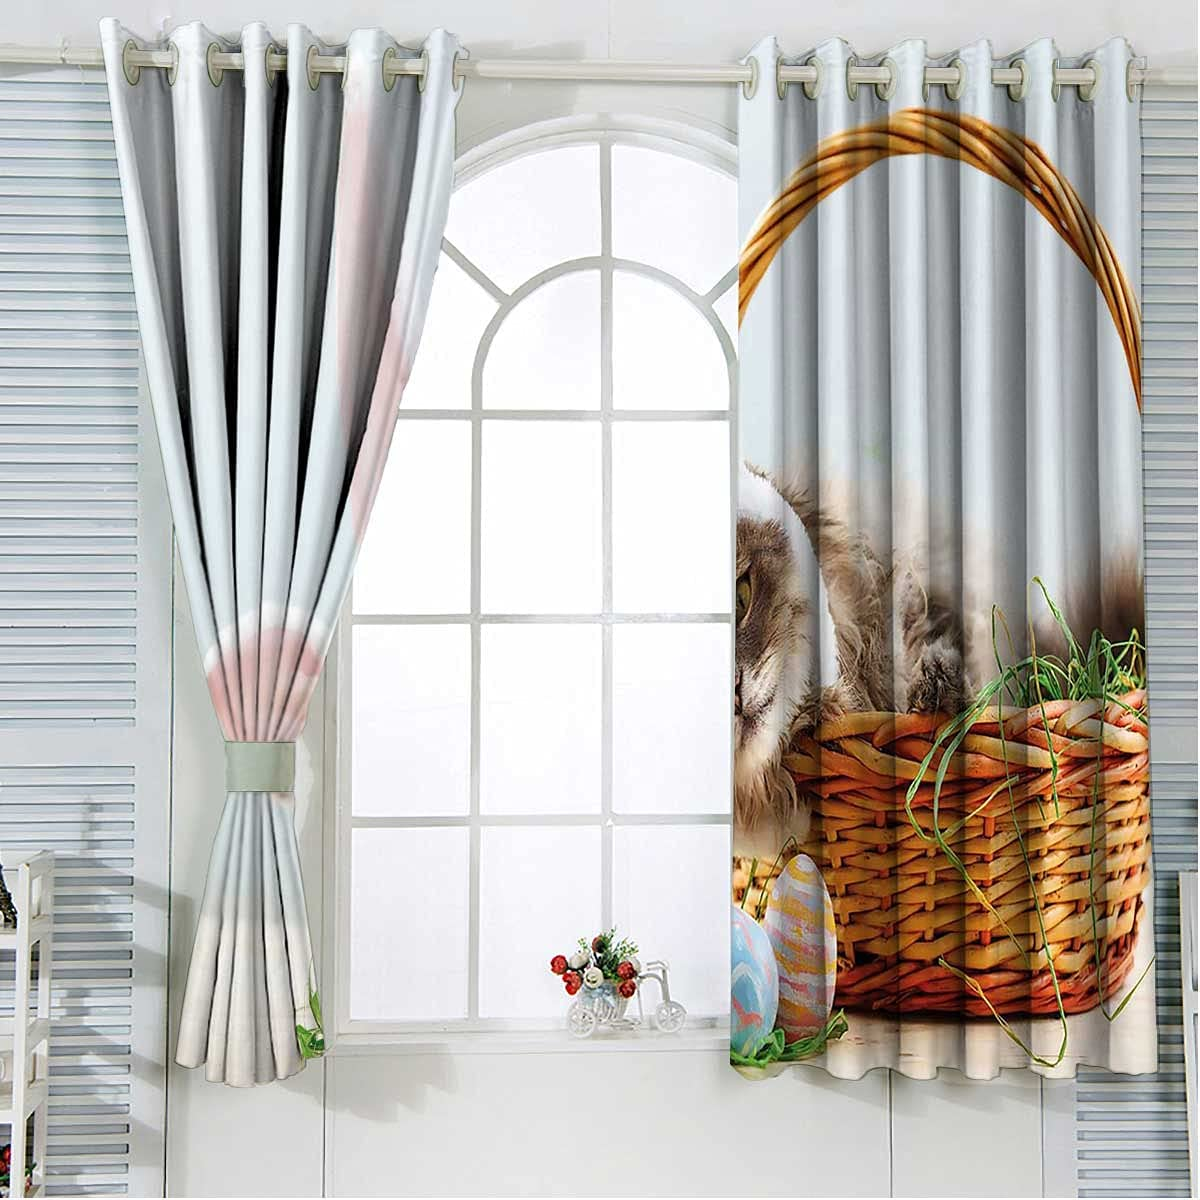 Small Curtains for Windows 72 Inches Cat Rabbi Very popular as Over item handling ☆ Easter Length